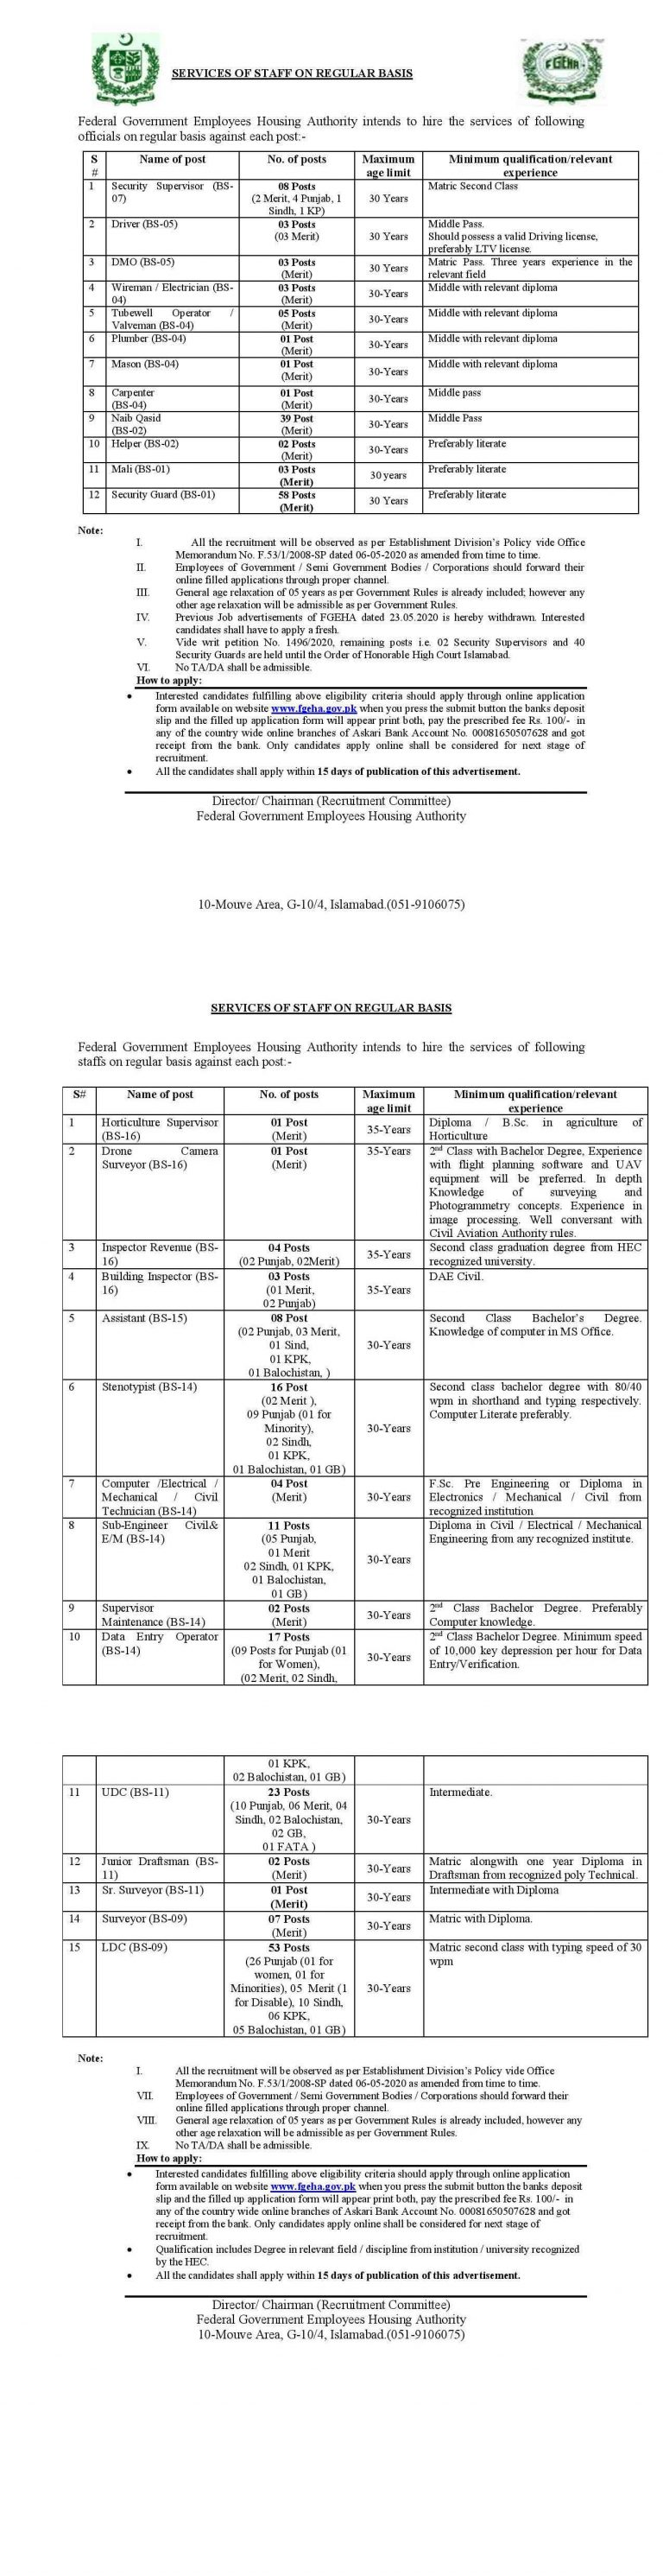 Latest Federal Government Employees Housing Authority FGEHA Jobs 2021